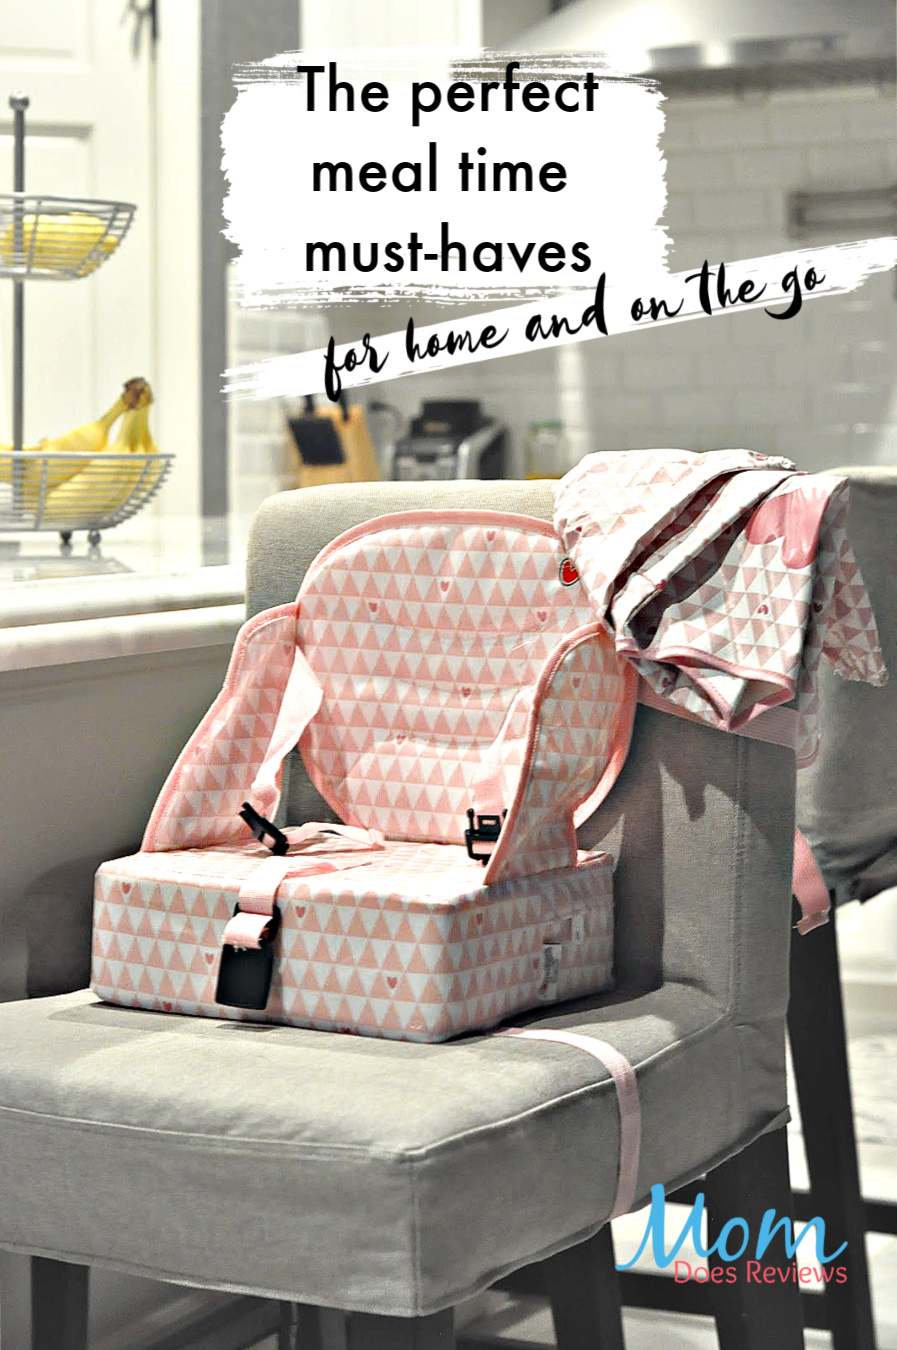 the perfect meal time must haves for baby. For home and on the go